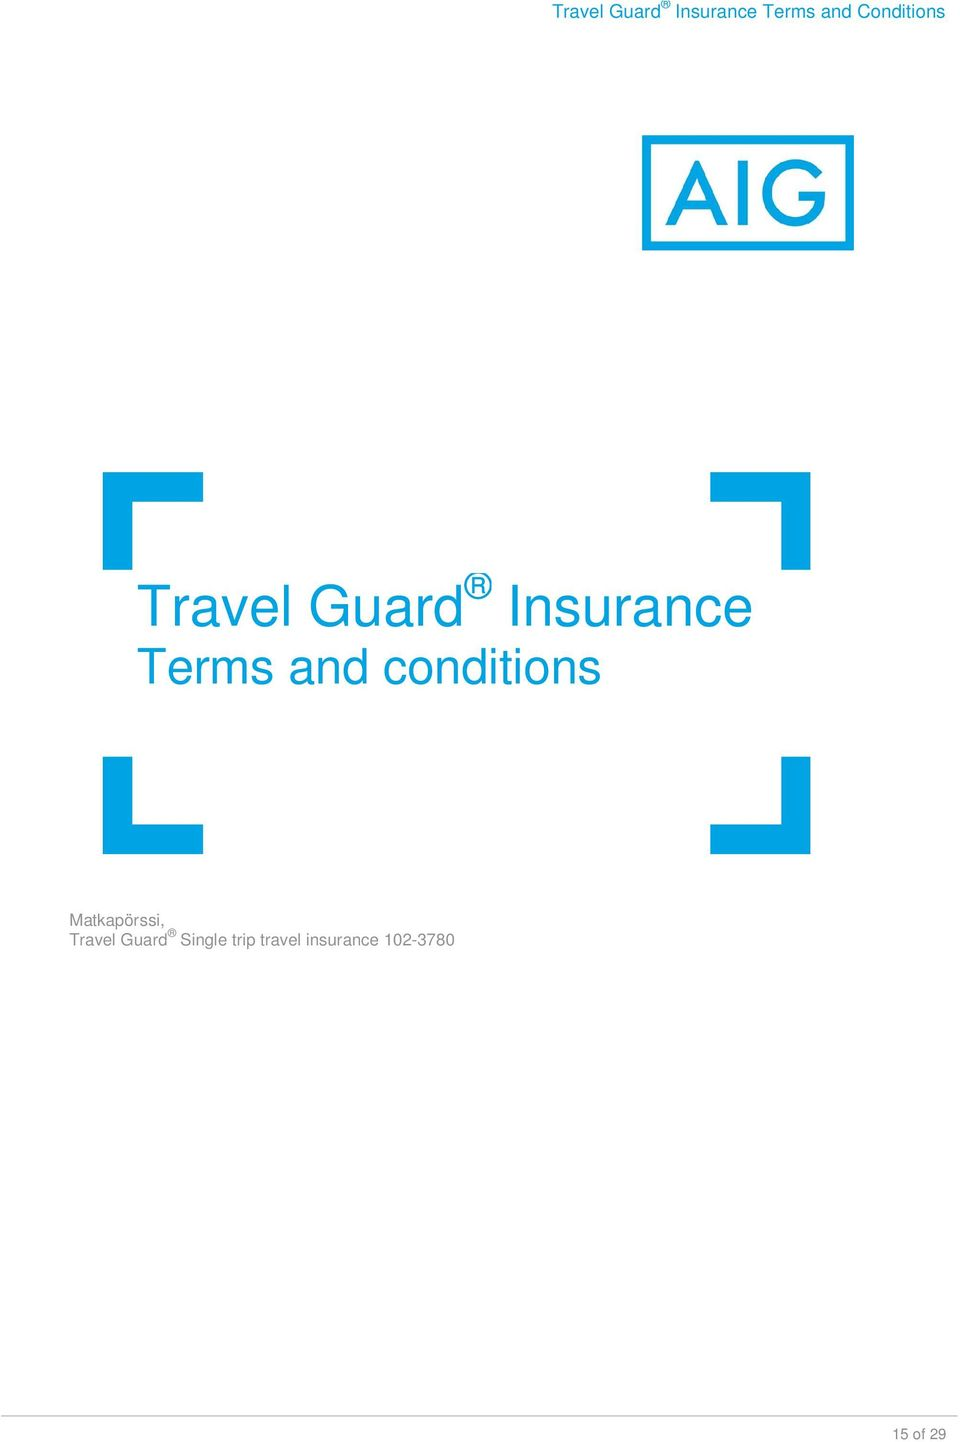 Travel Guard Single trip travel